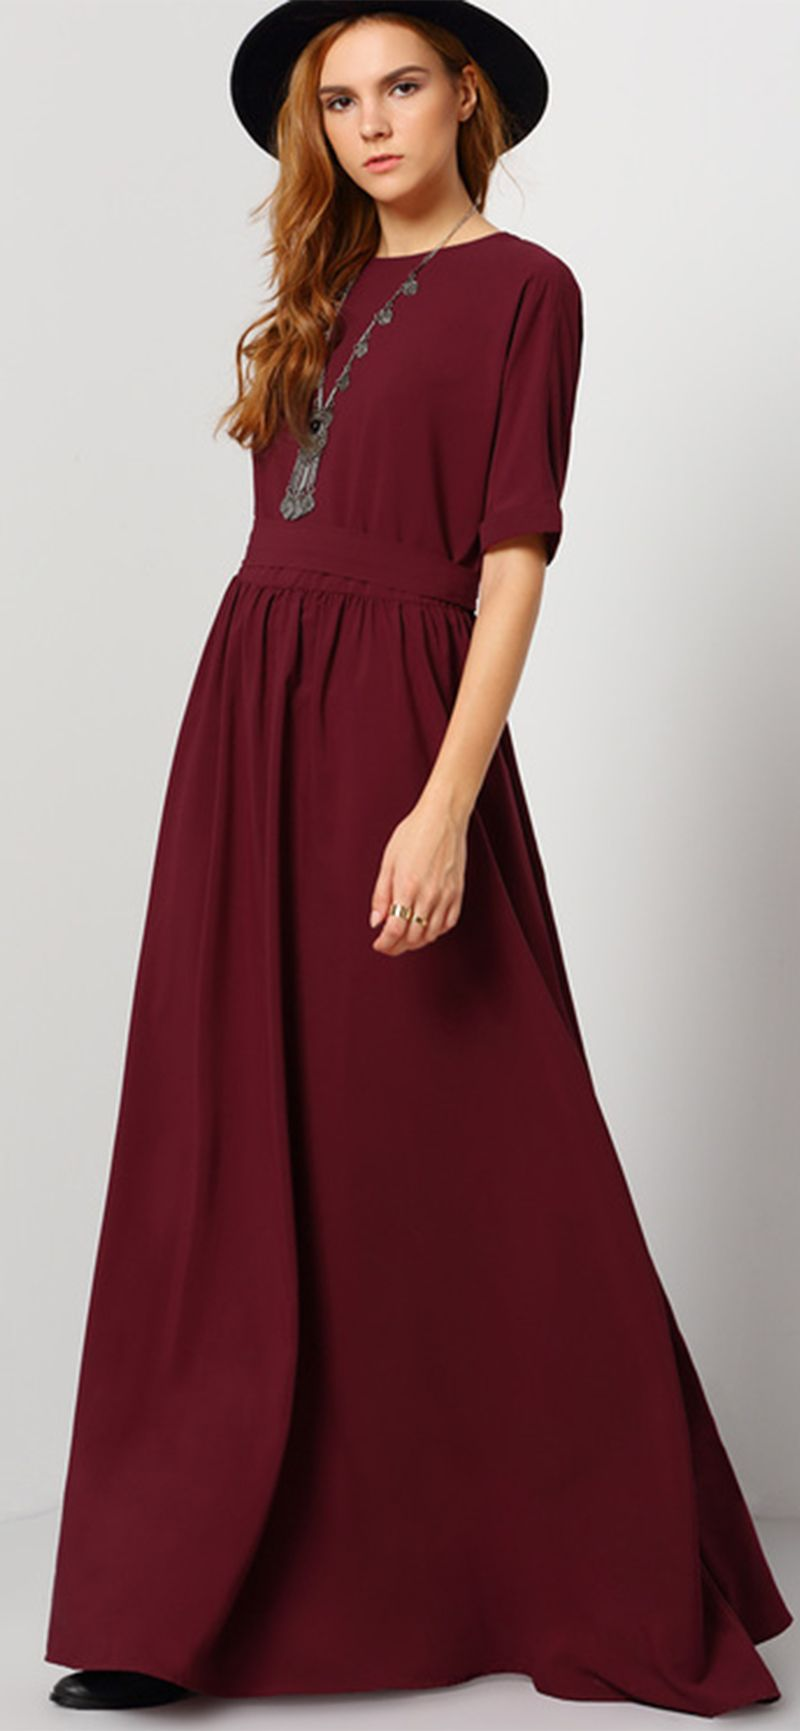 Slip Into A Volume Of Sophistication With This Burgundy Maxi Dress A Classic Round Neck And Folded Elbow Length Sle Half Sleeve Dresses Modest Dresses Fashion [ 1731 x 800 Pixel ]